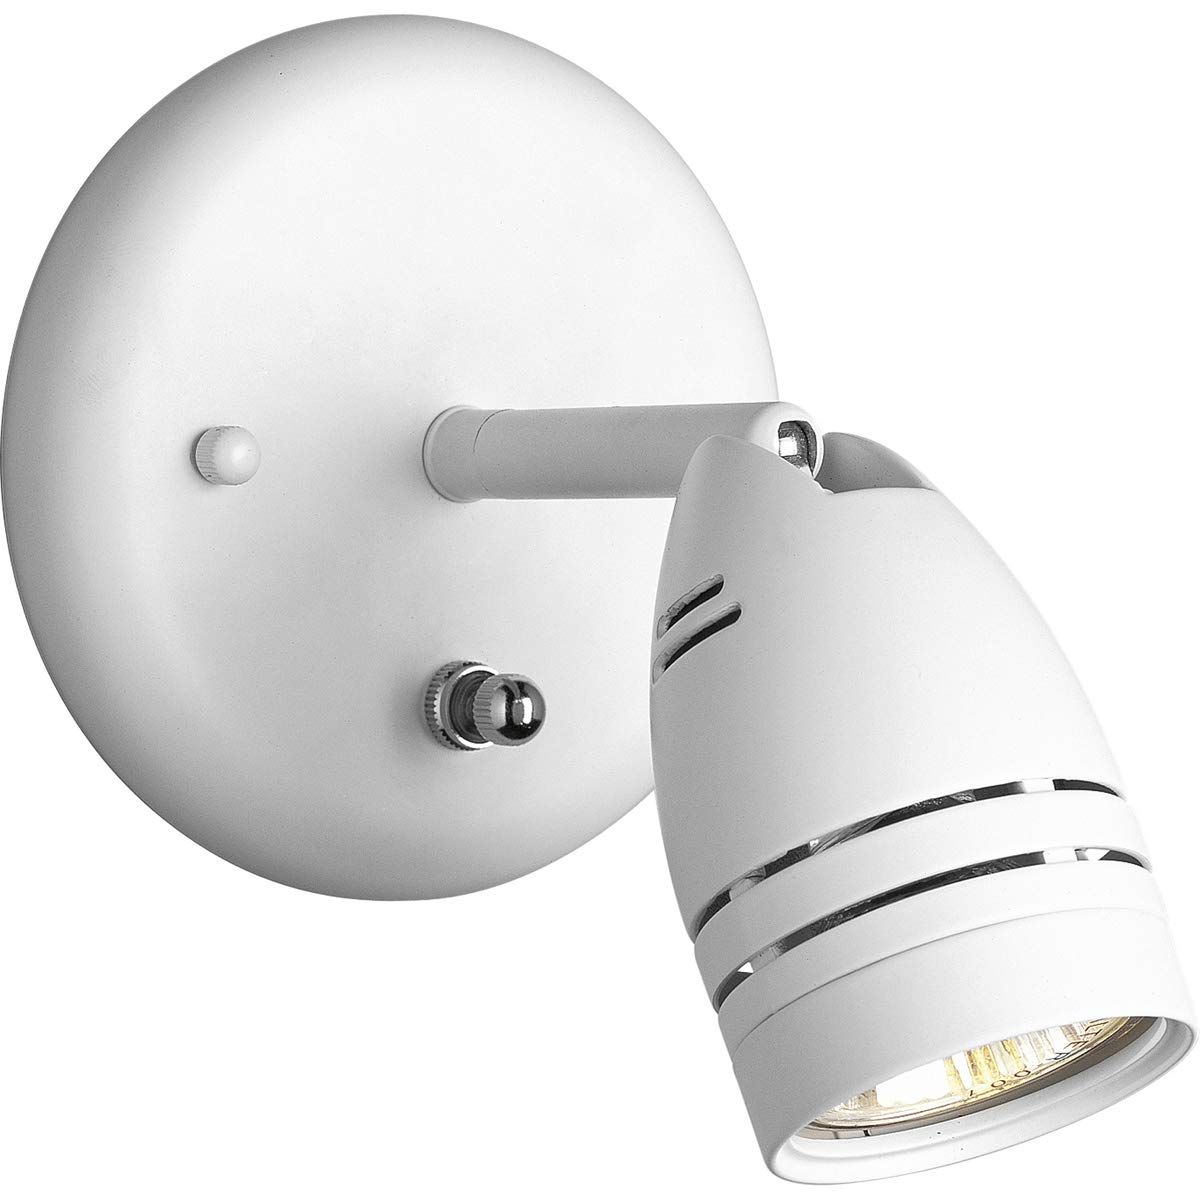 Progress Lighting P6154-30WB 1-Light Wall Mount Directional with On/Off Switch, White